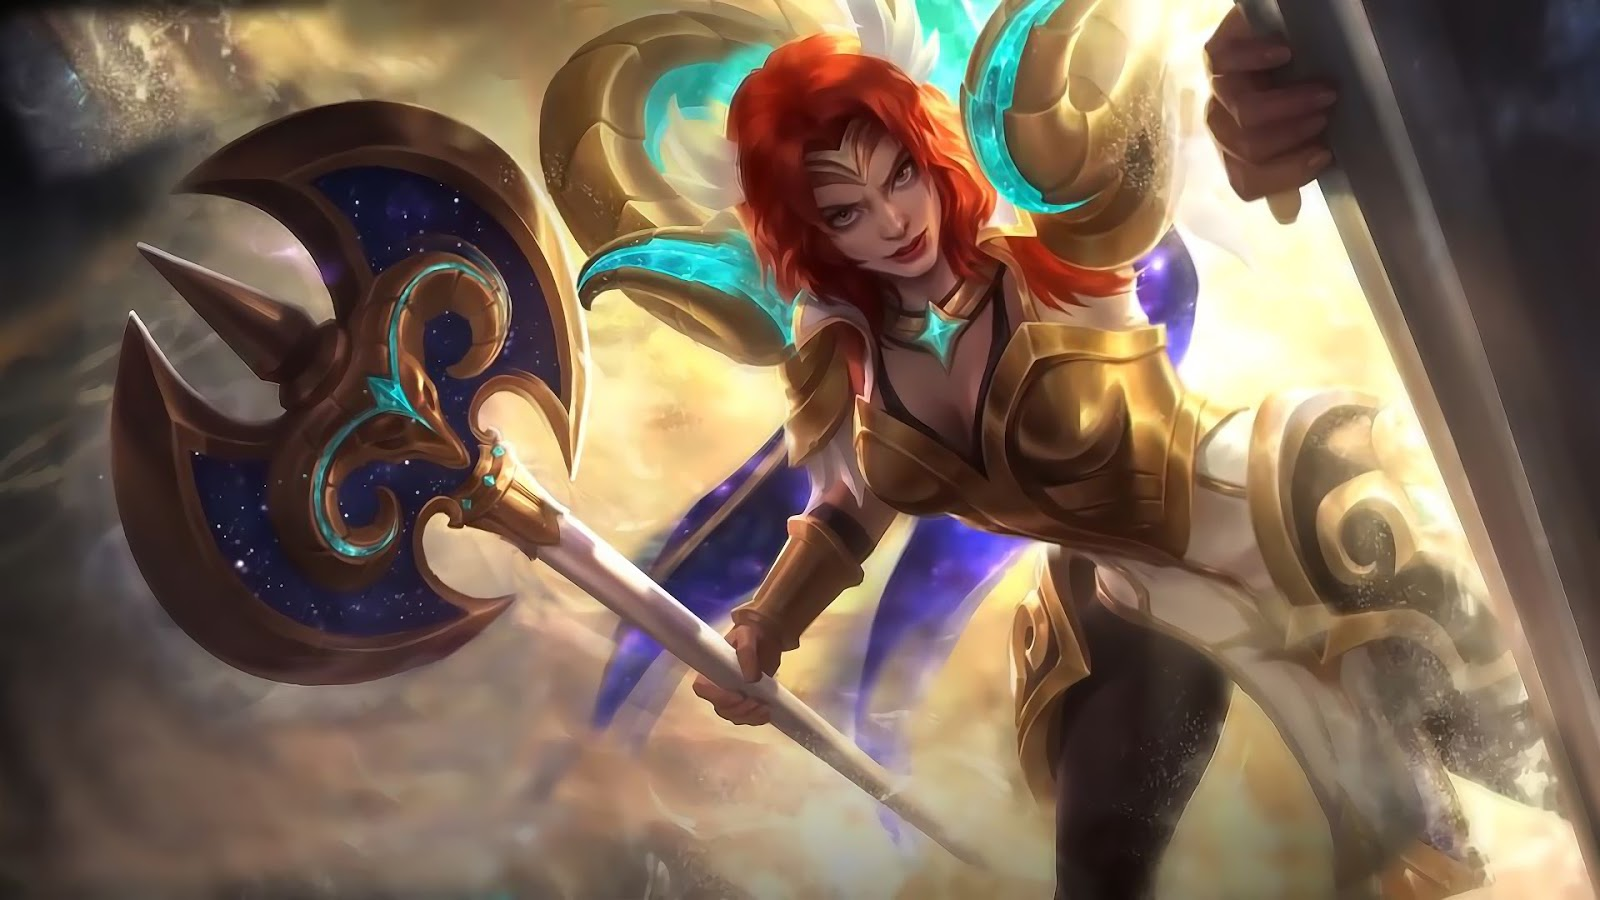 Wallpaper Hilda Aries Skin Mobile Legends HD for PC